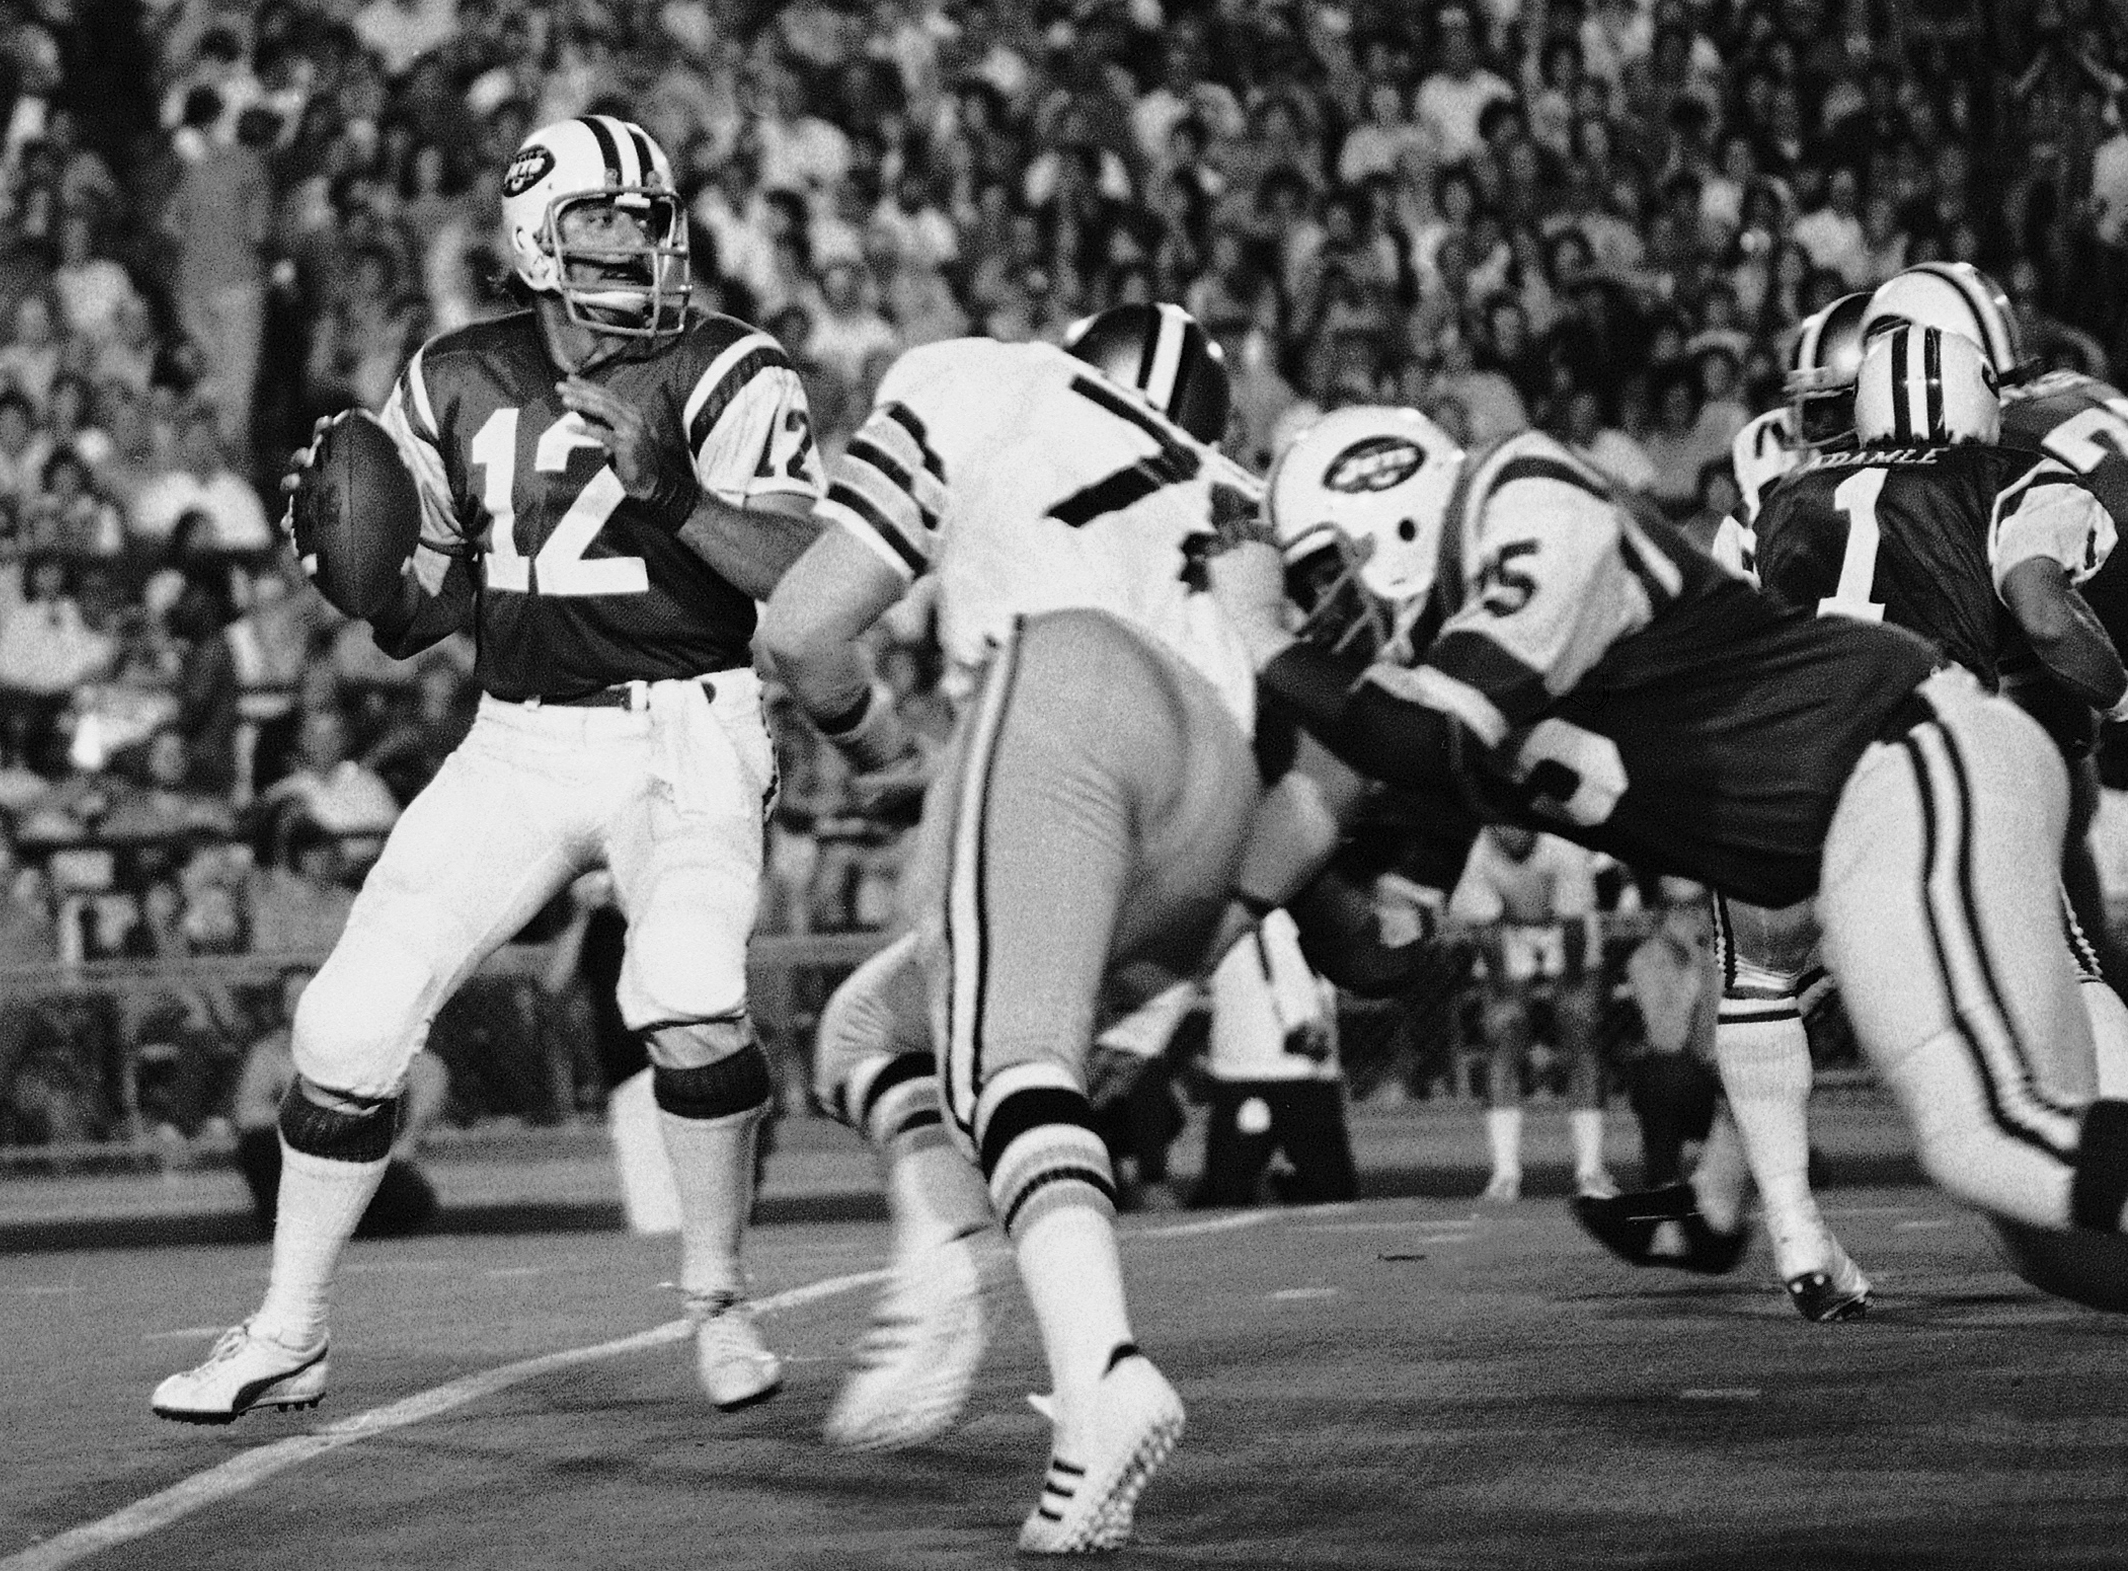 FILE- In this Sept. 2, 1973, file photo, New York Jets' Joe Namath (12) gets set to launch a delivery to Rick Caster as New Orleans Saints Billy Newsome (78) puts on the pressure and Jets' Winston Hill (75) blocks. Hill, a durable Pro Bowl offensive tackl